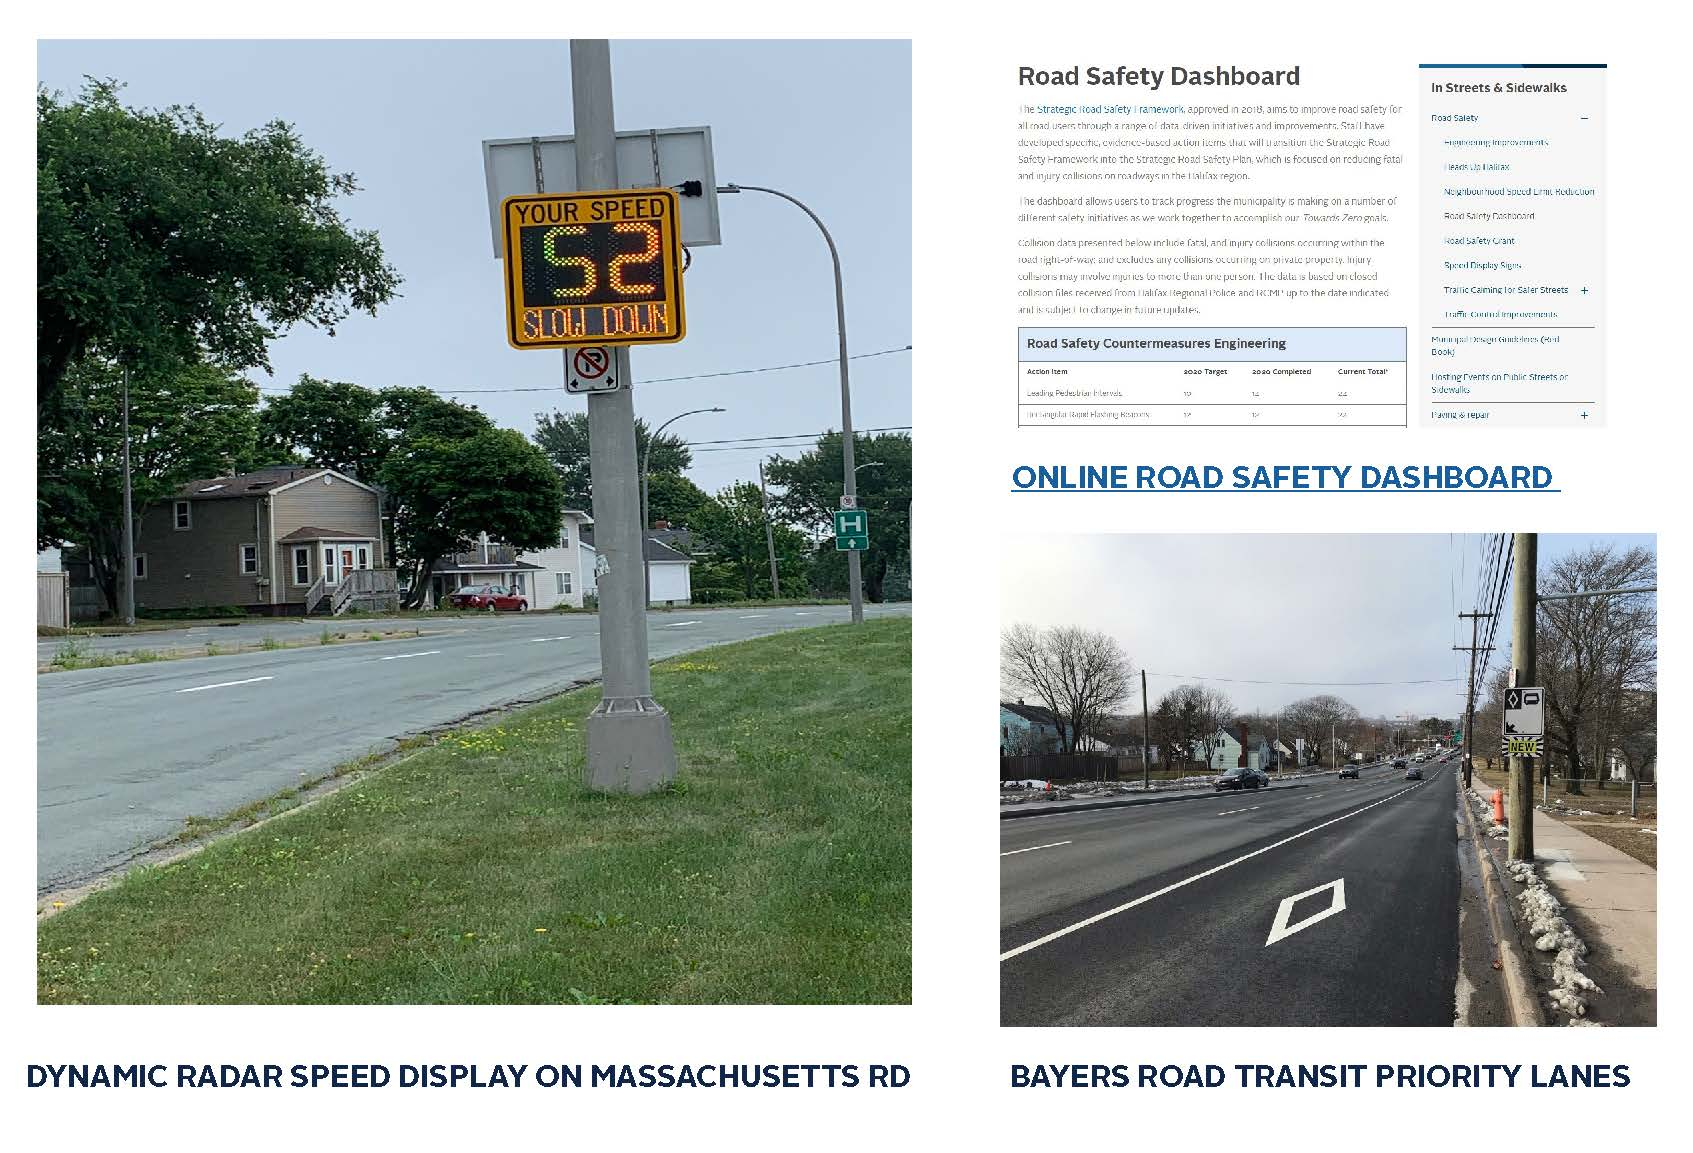 Dynamic Radar, Online Road Safety Dashboard, Bayers Road Transit Priority